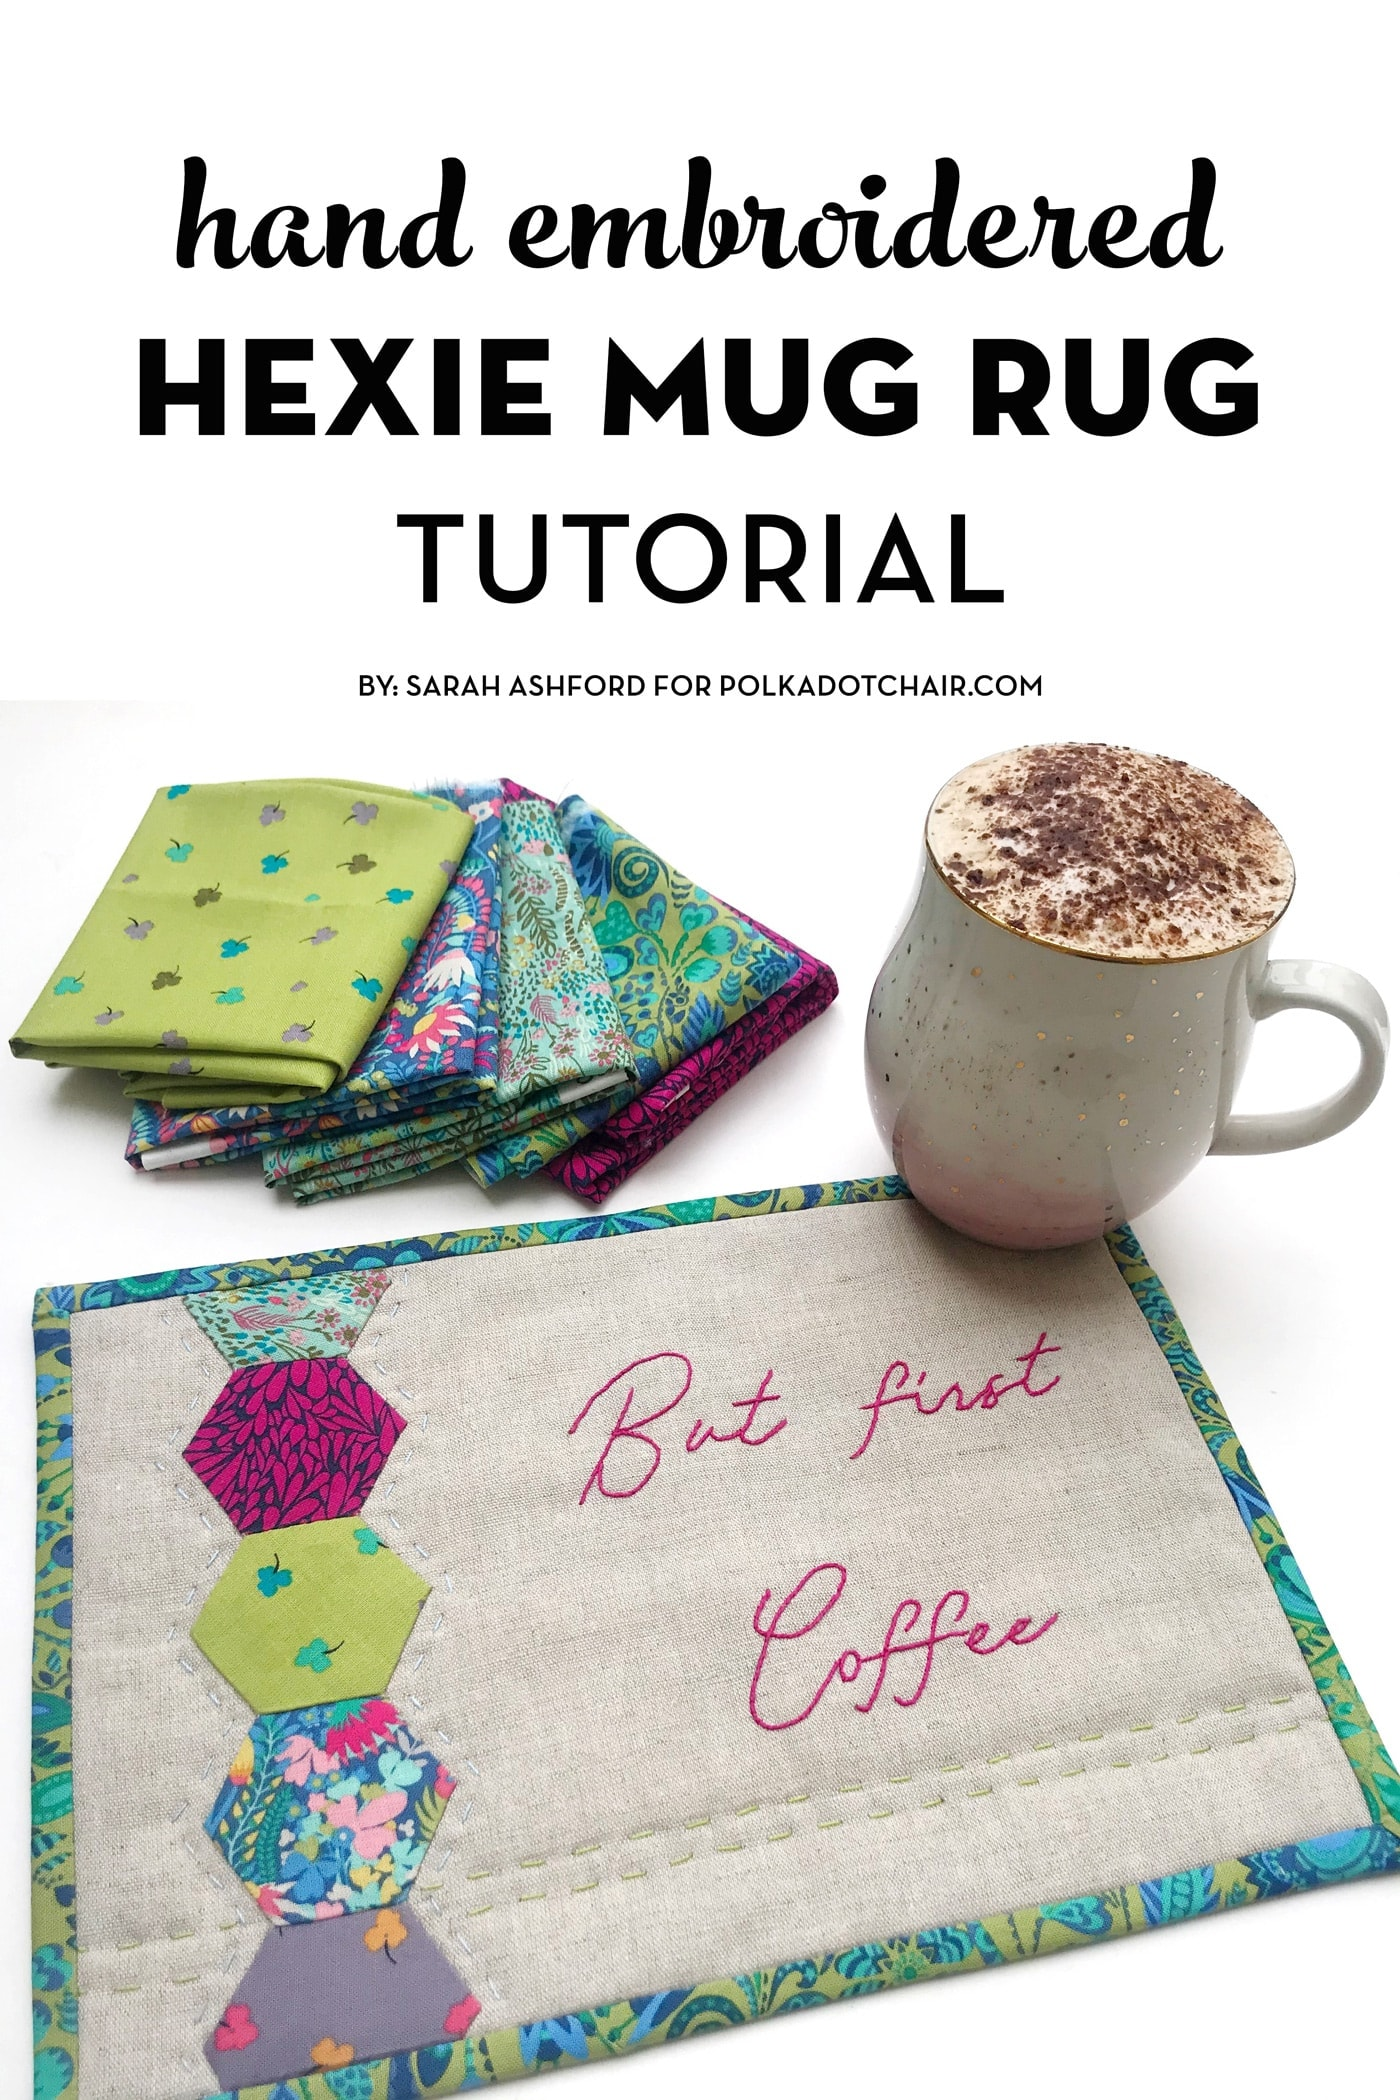 Embroidered Hexie Mug Rug Pattern The Polka Dot Chair